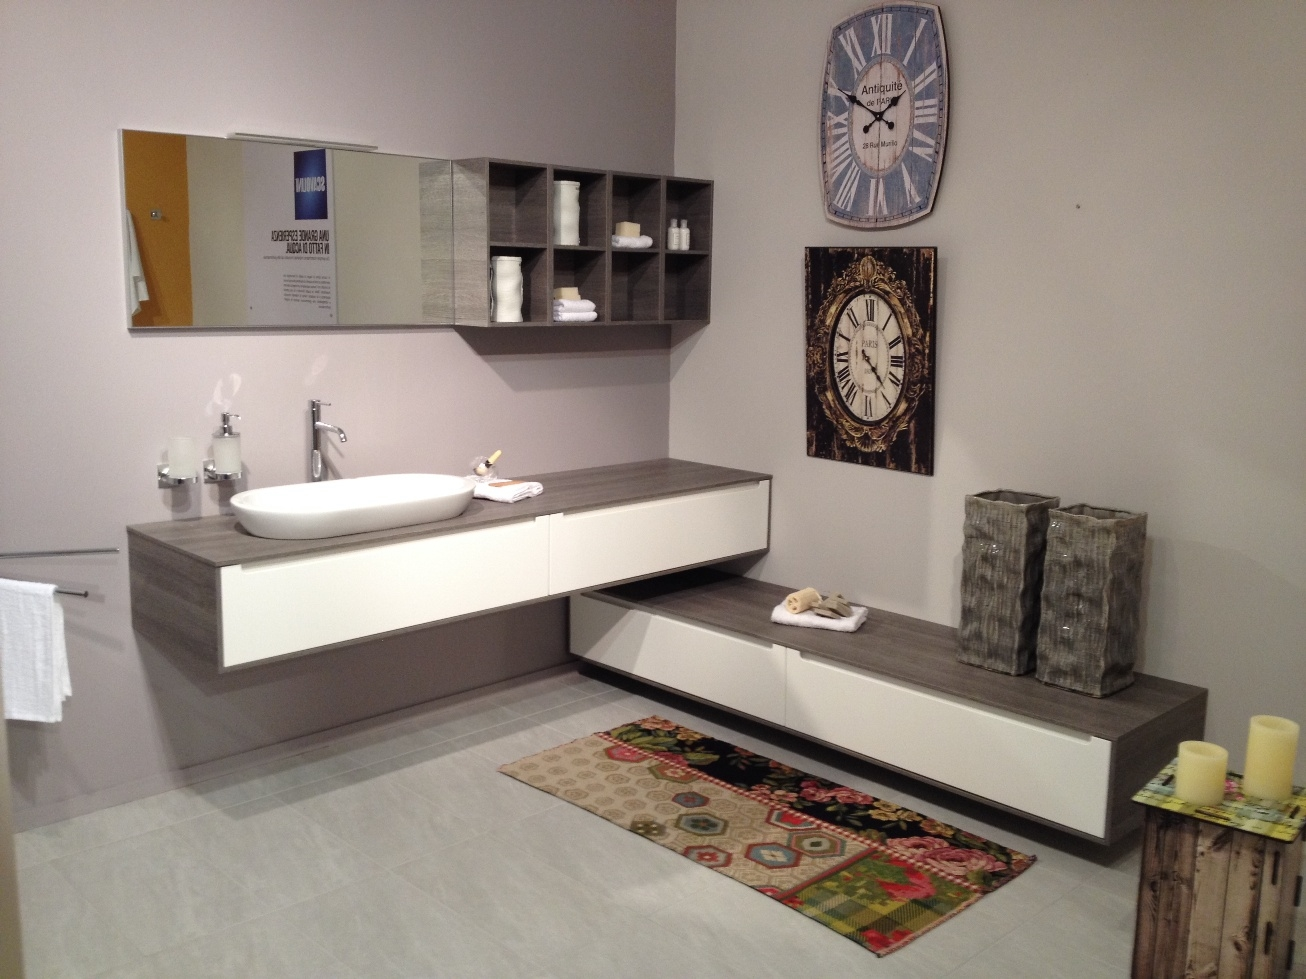 Outlet Bagno Milano. Gallery Of Scavolini Idro Laccato Opaco With ...